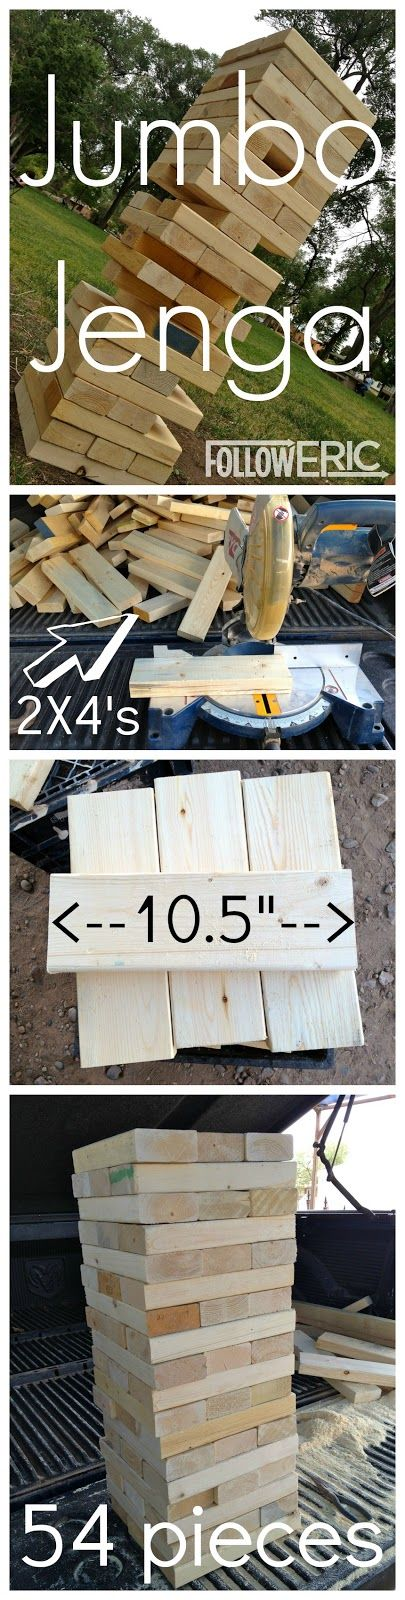 Jumbo Jenga - would be fun at a Fourth of July party: